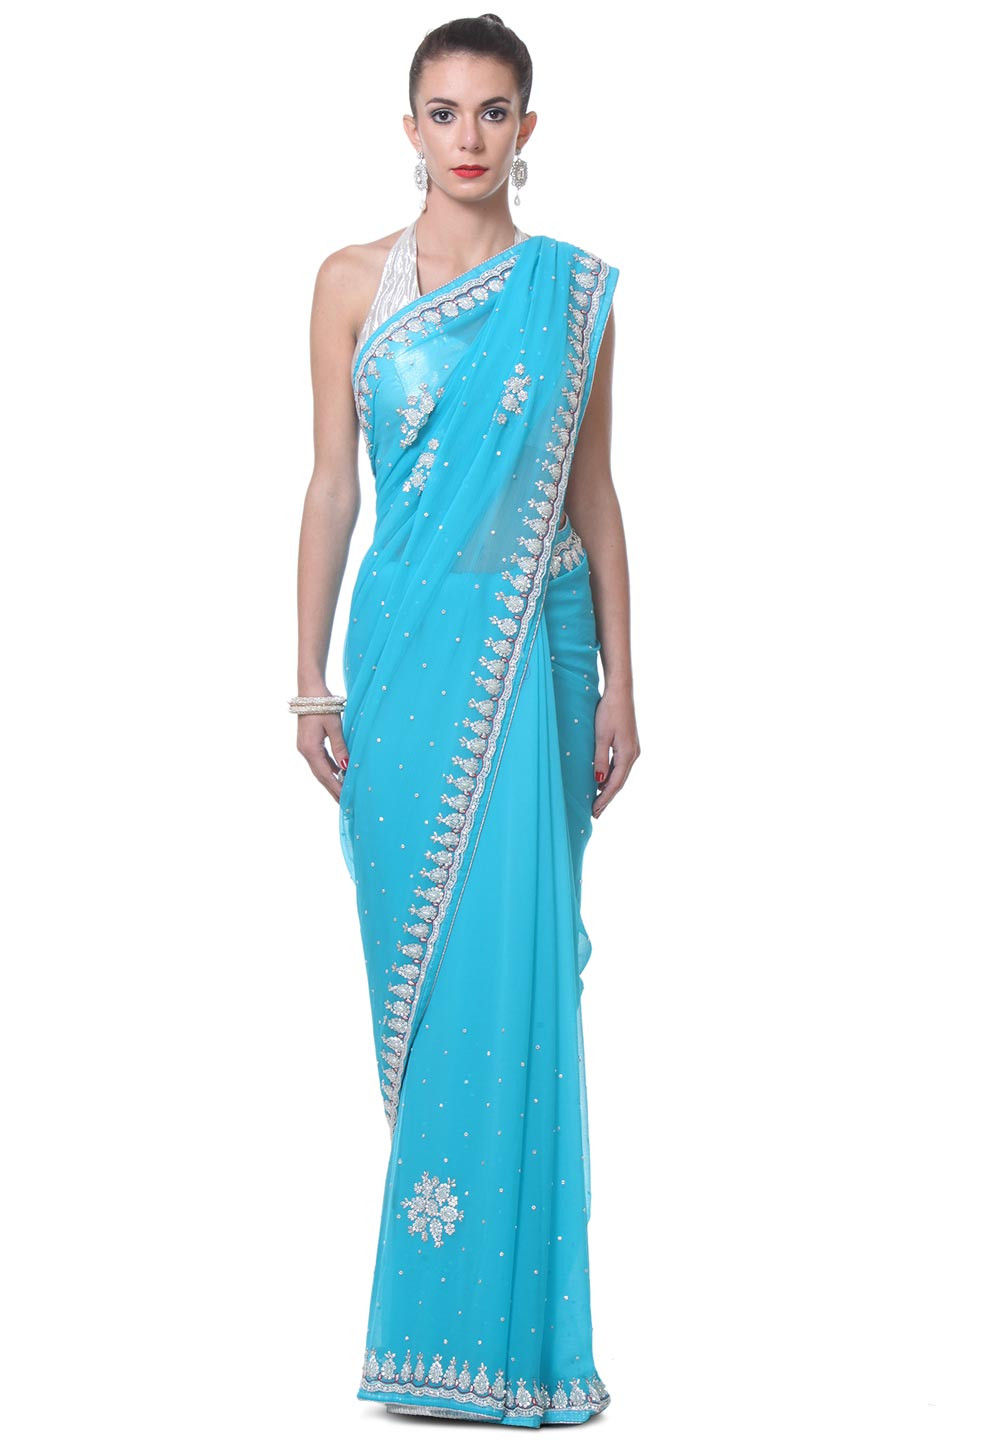 Hand Embroidered Chiffon Saree in Sky Blue